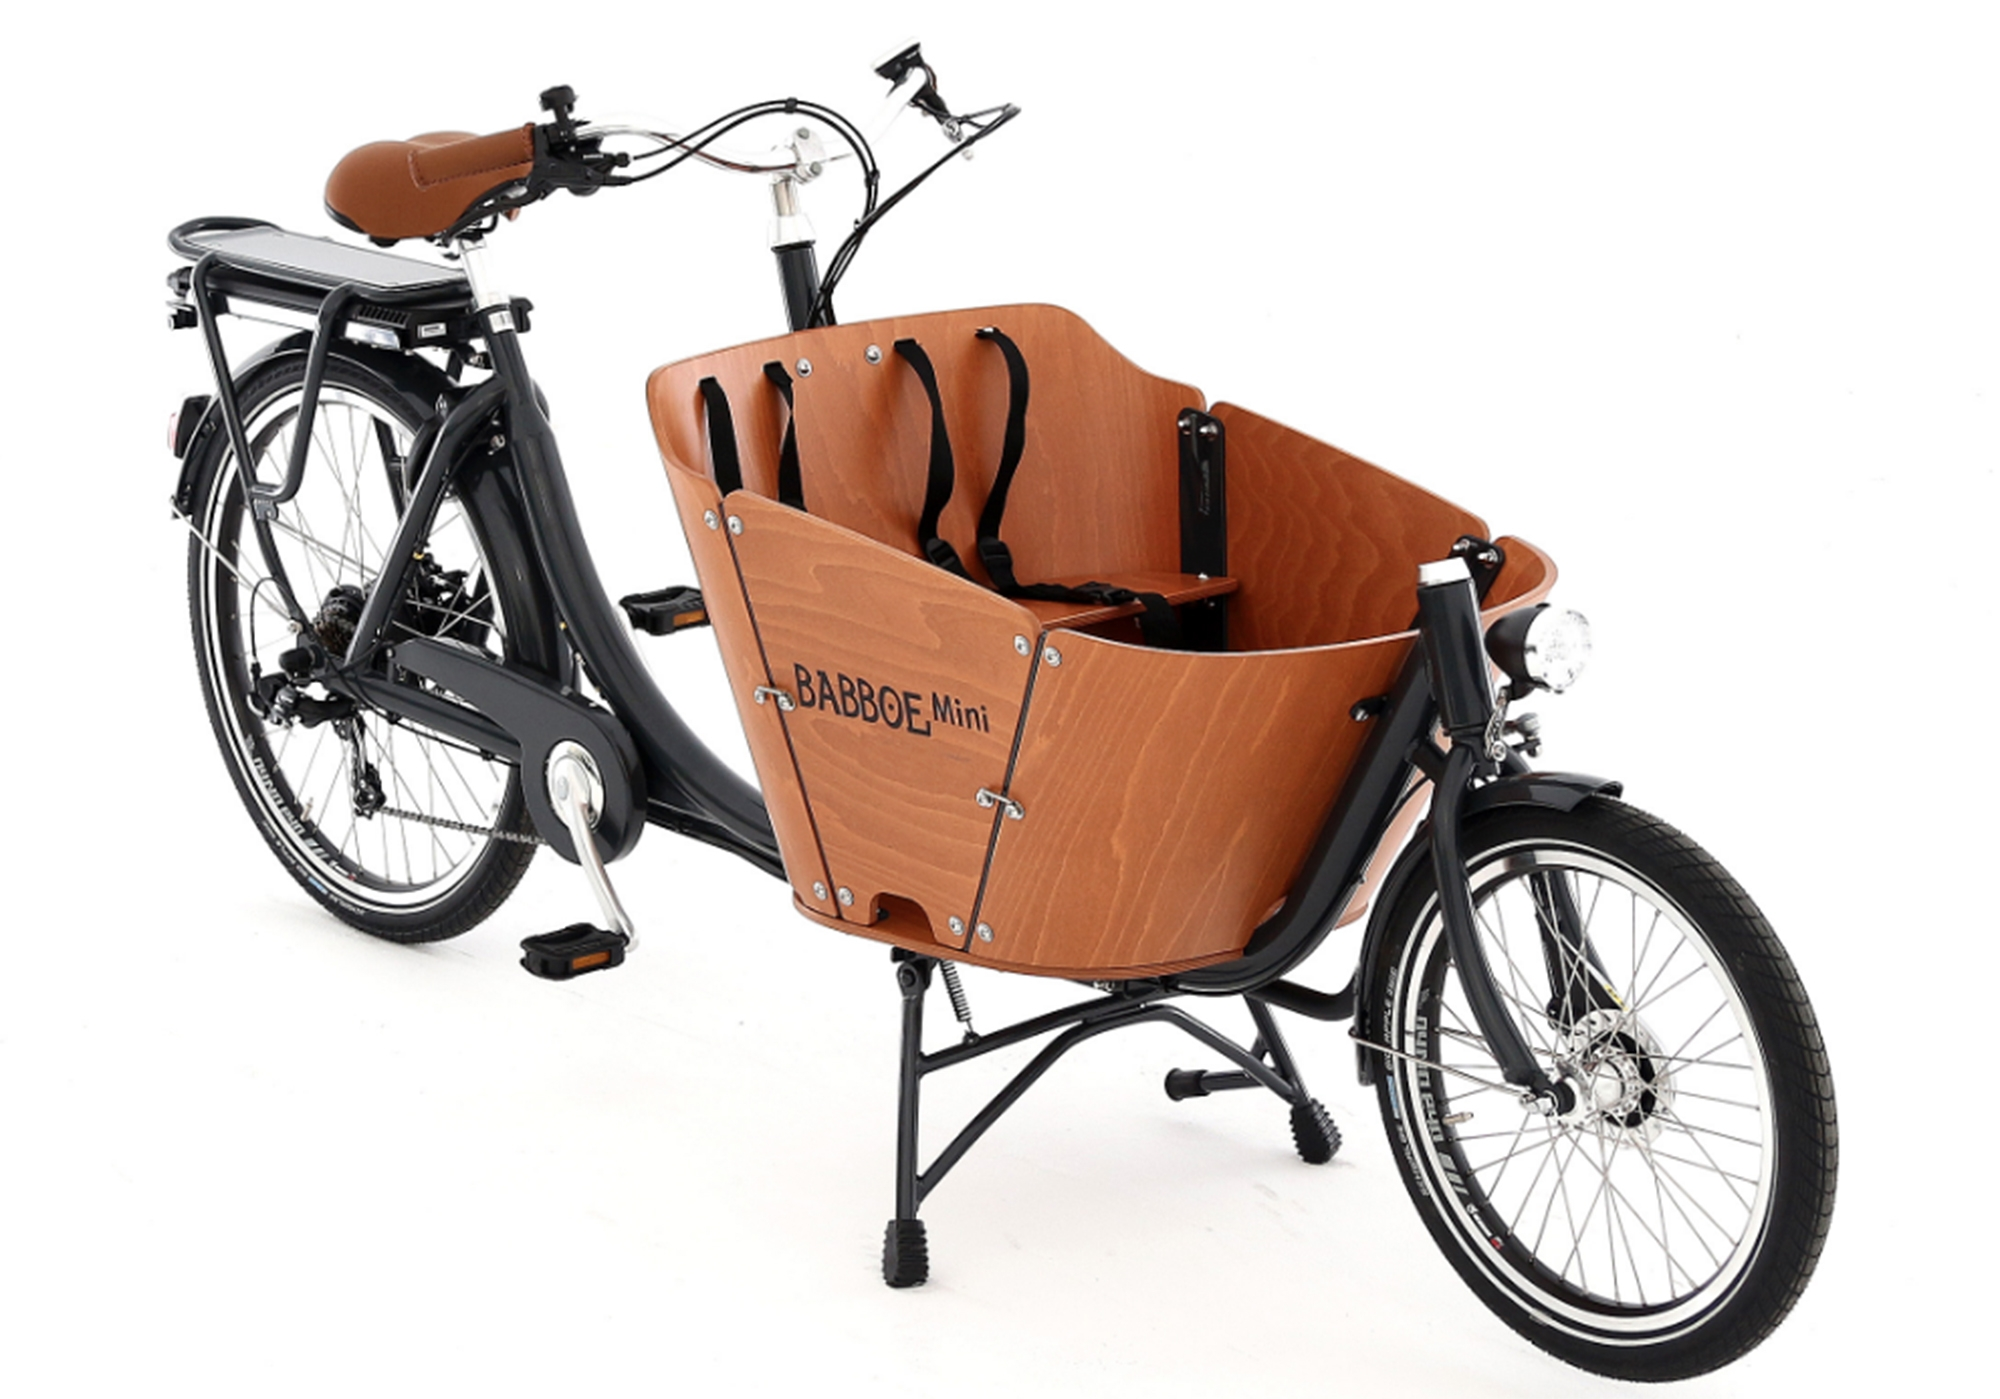 babboe mini electric cargo bike cargocycles. Black Bedroom Furniture Sets. Home Design Ideas